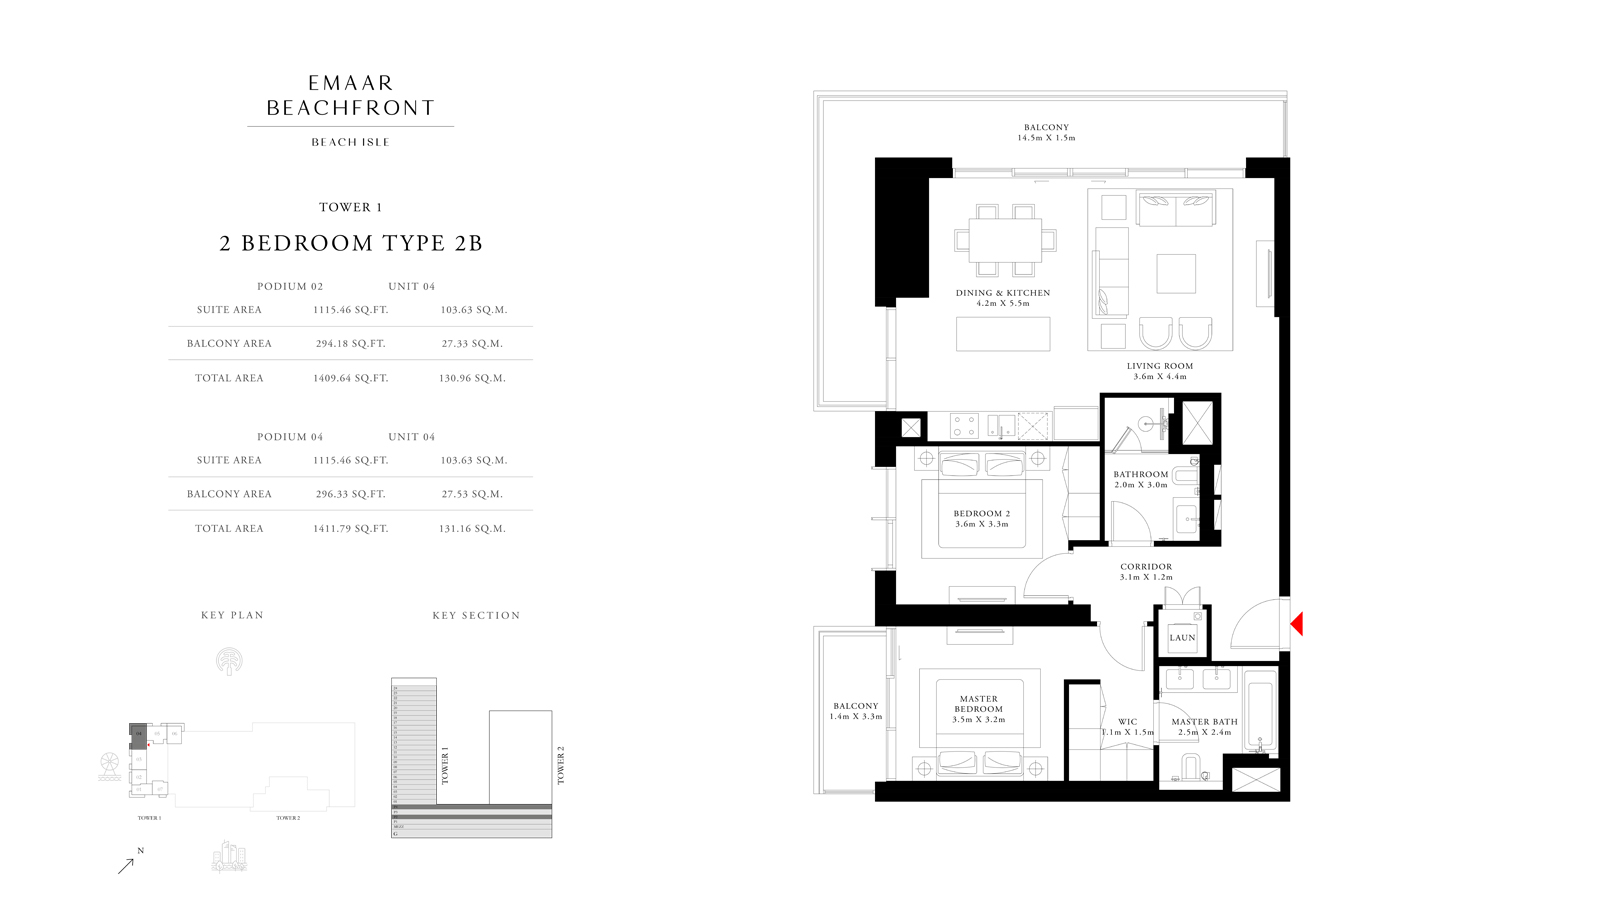 2 Bedroom Type 2B Tower 1, Size 1411 sq ft